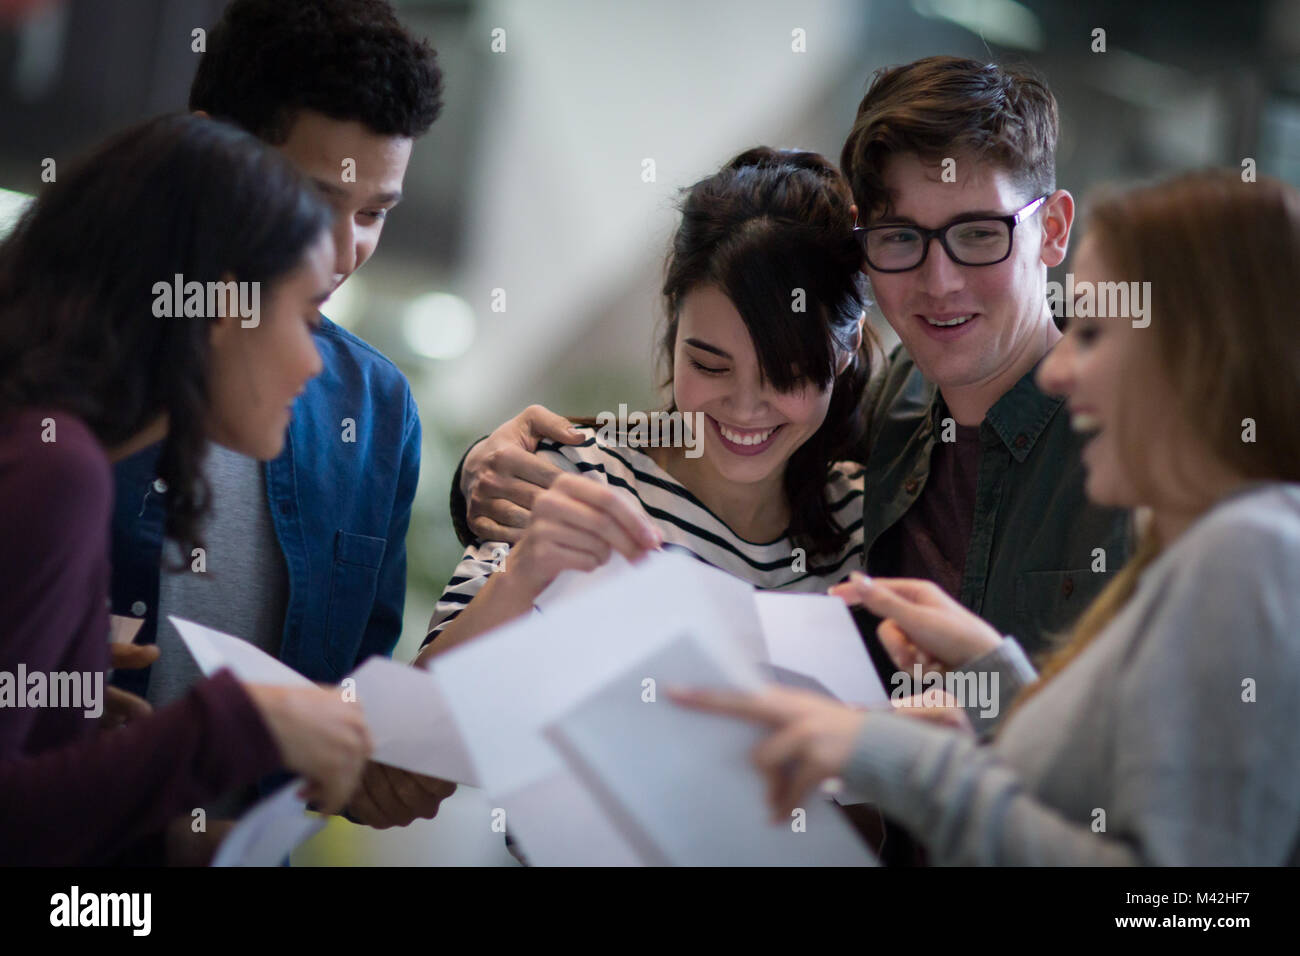 Students opening exam results - Stock Image